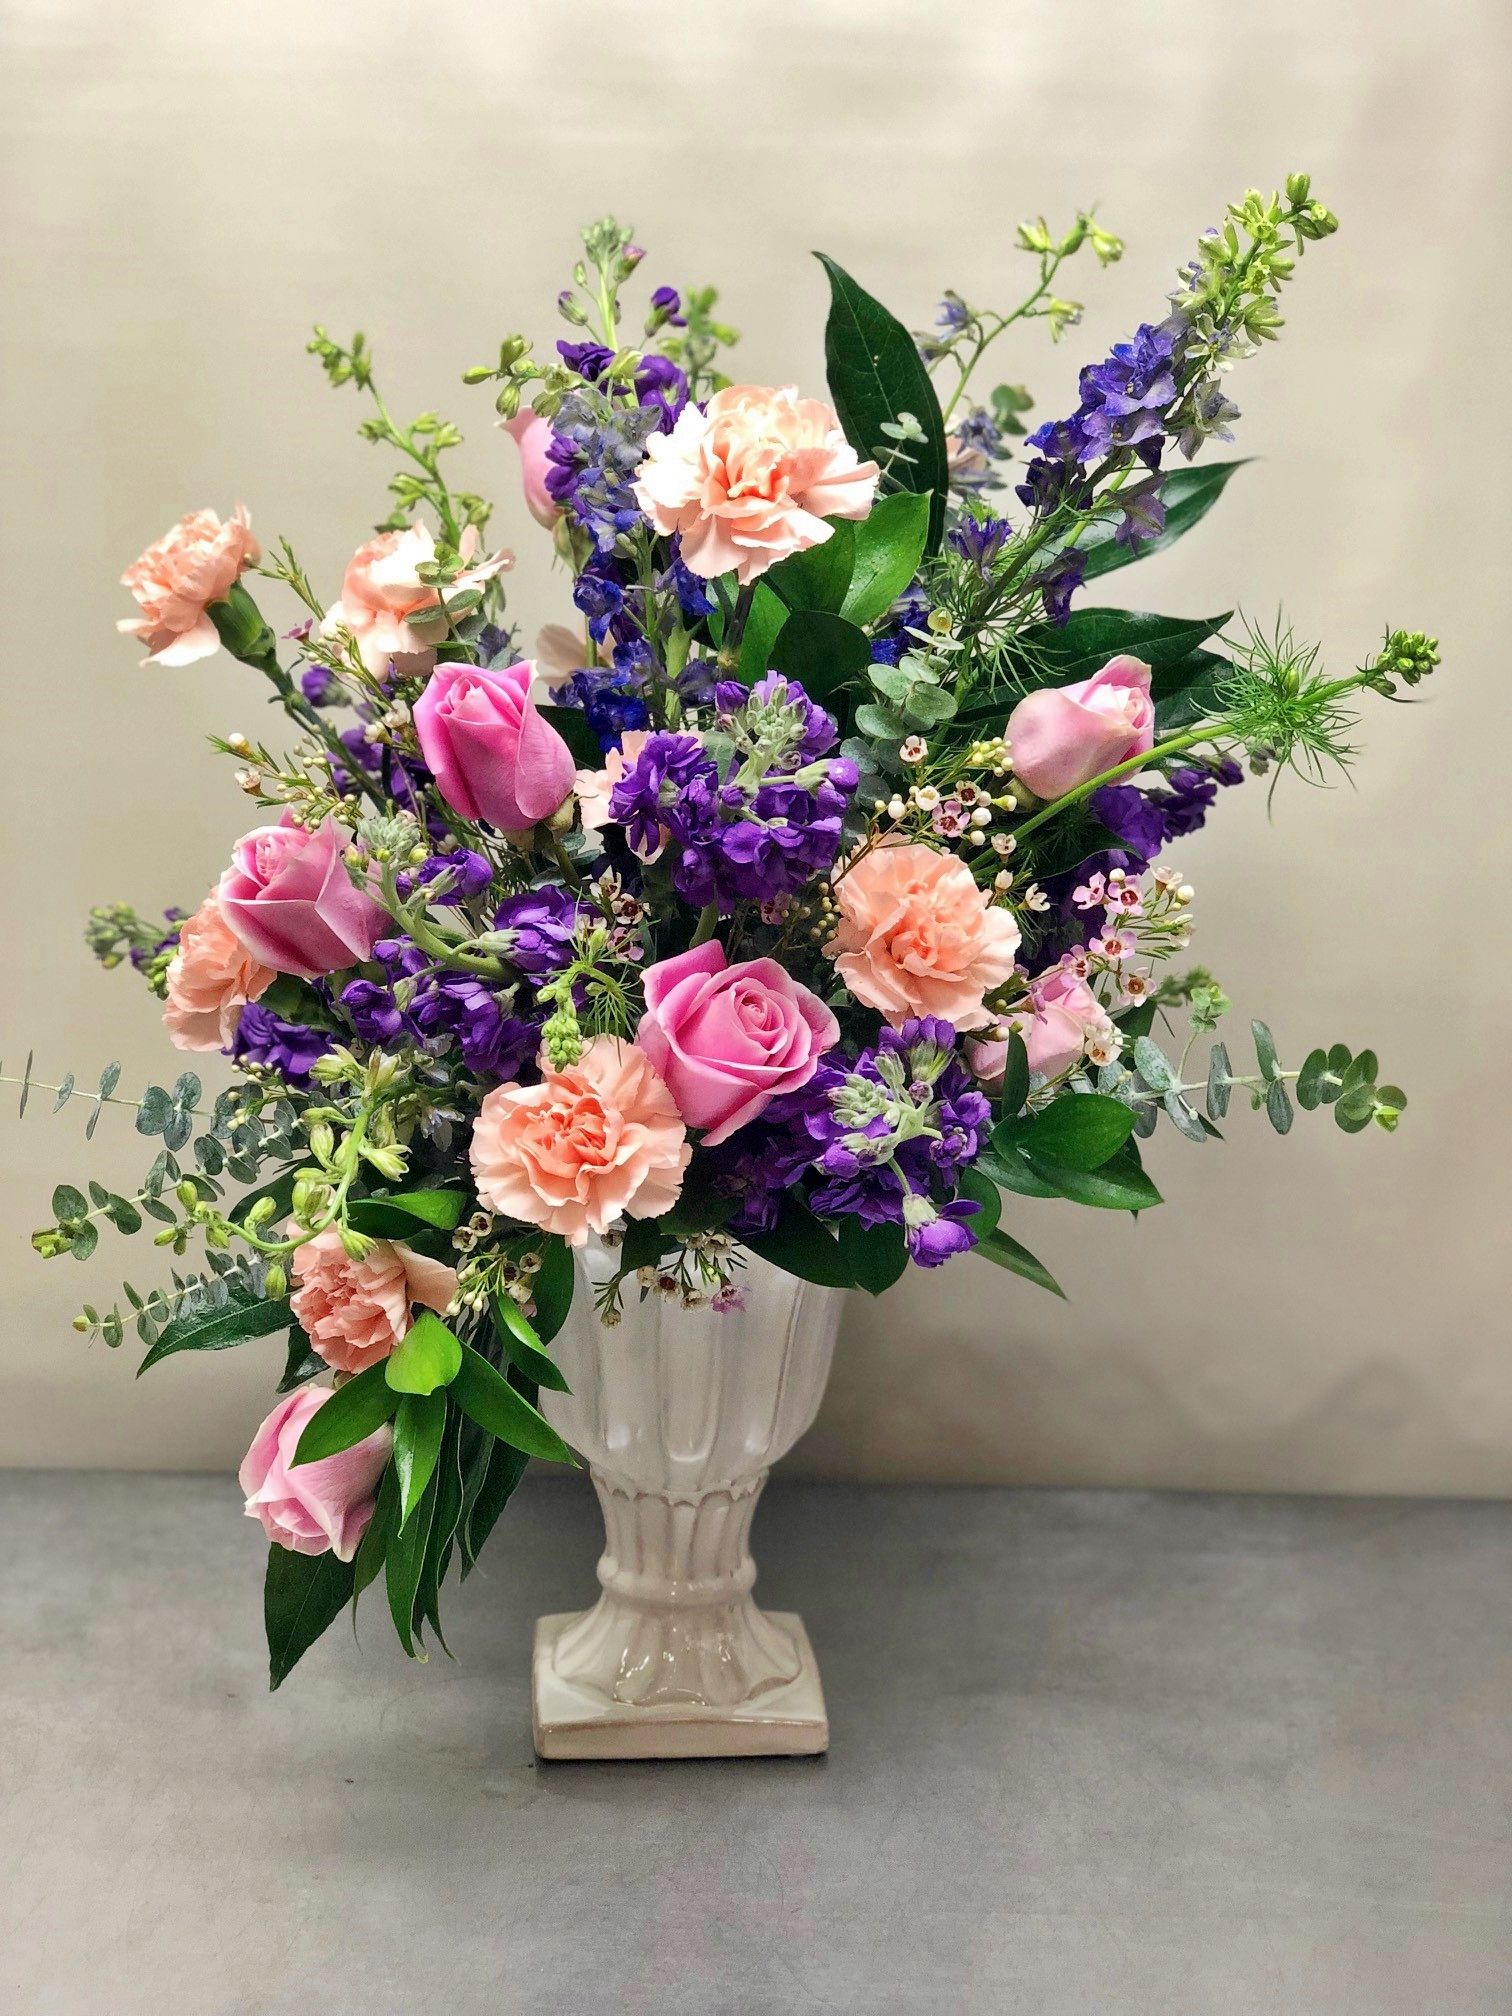 Pin On Sympathy Flowers Gallery